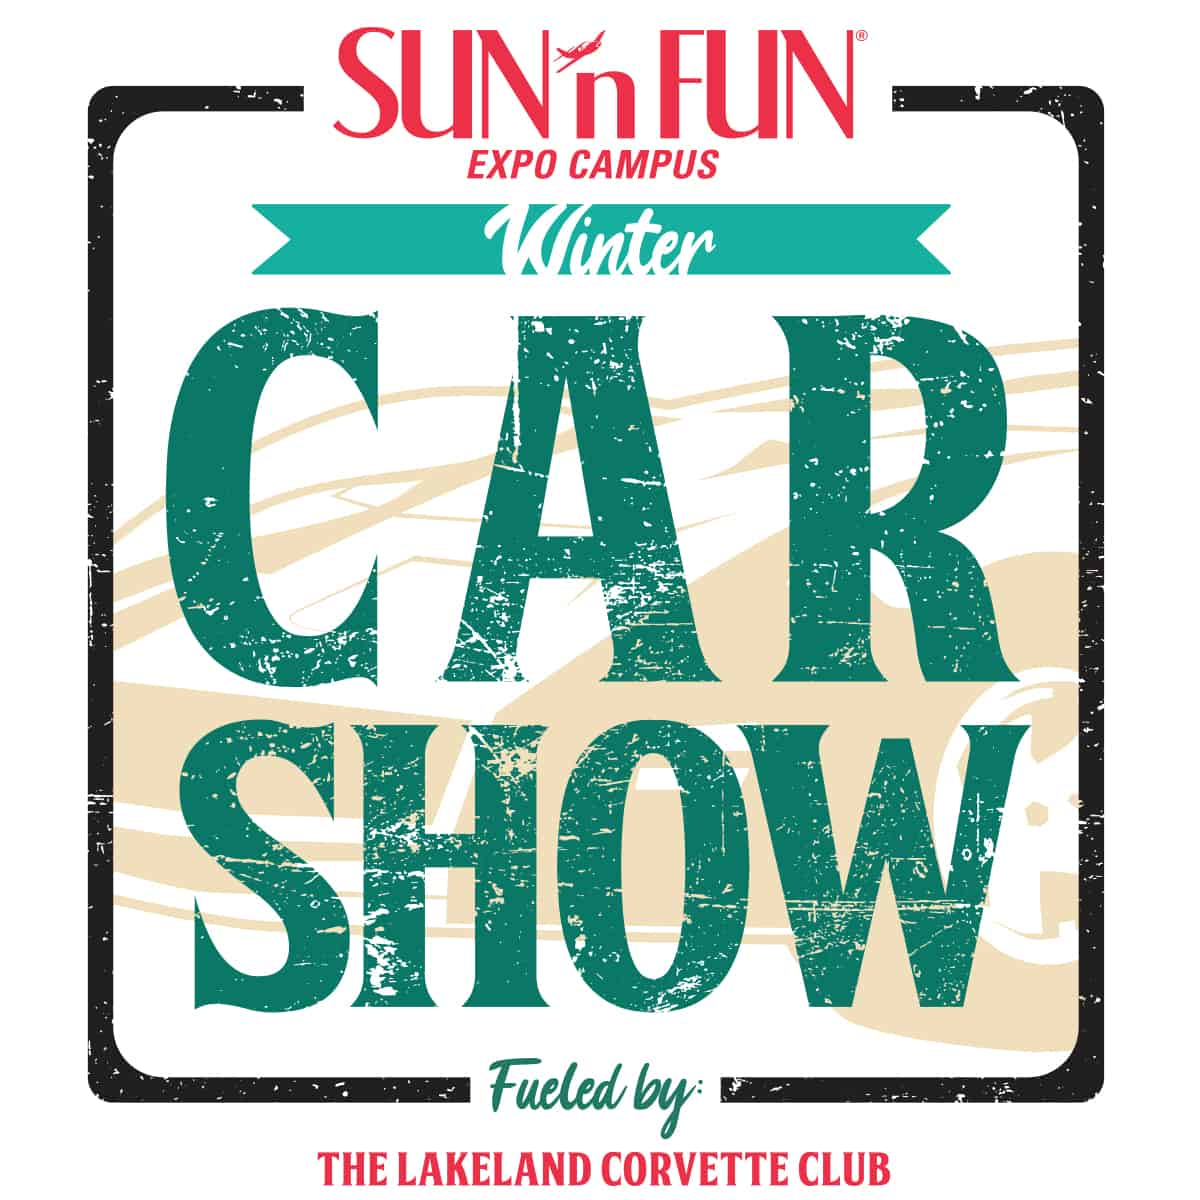 snf_carshow